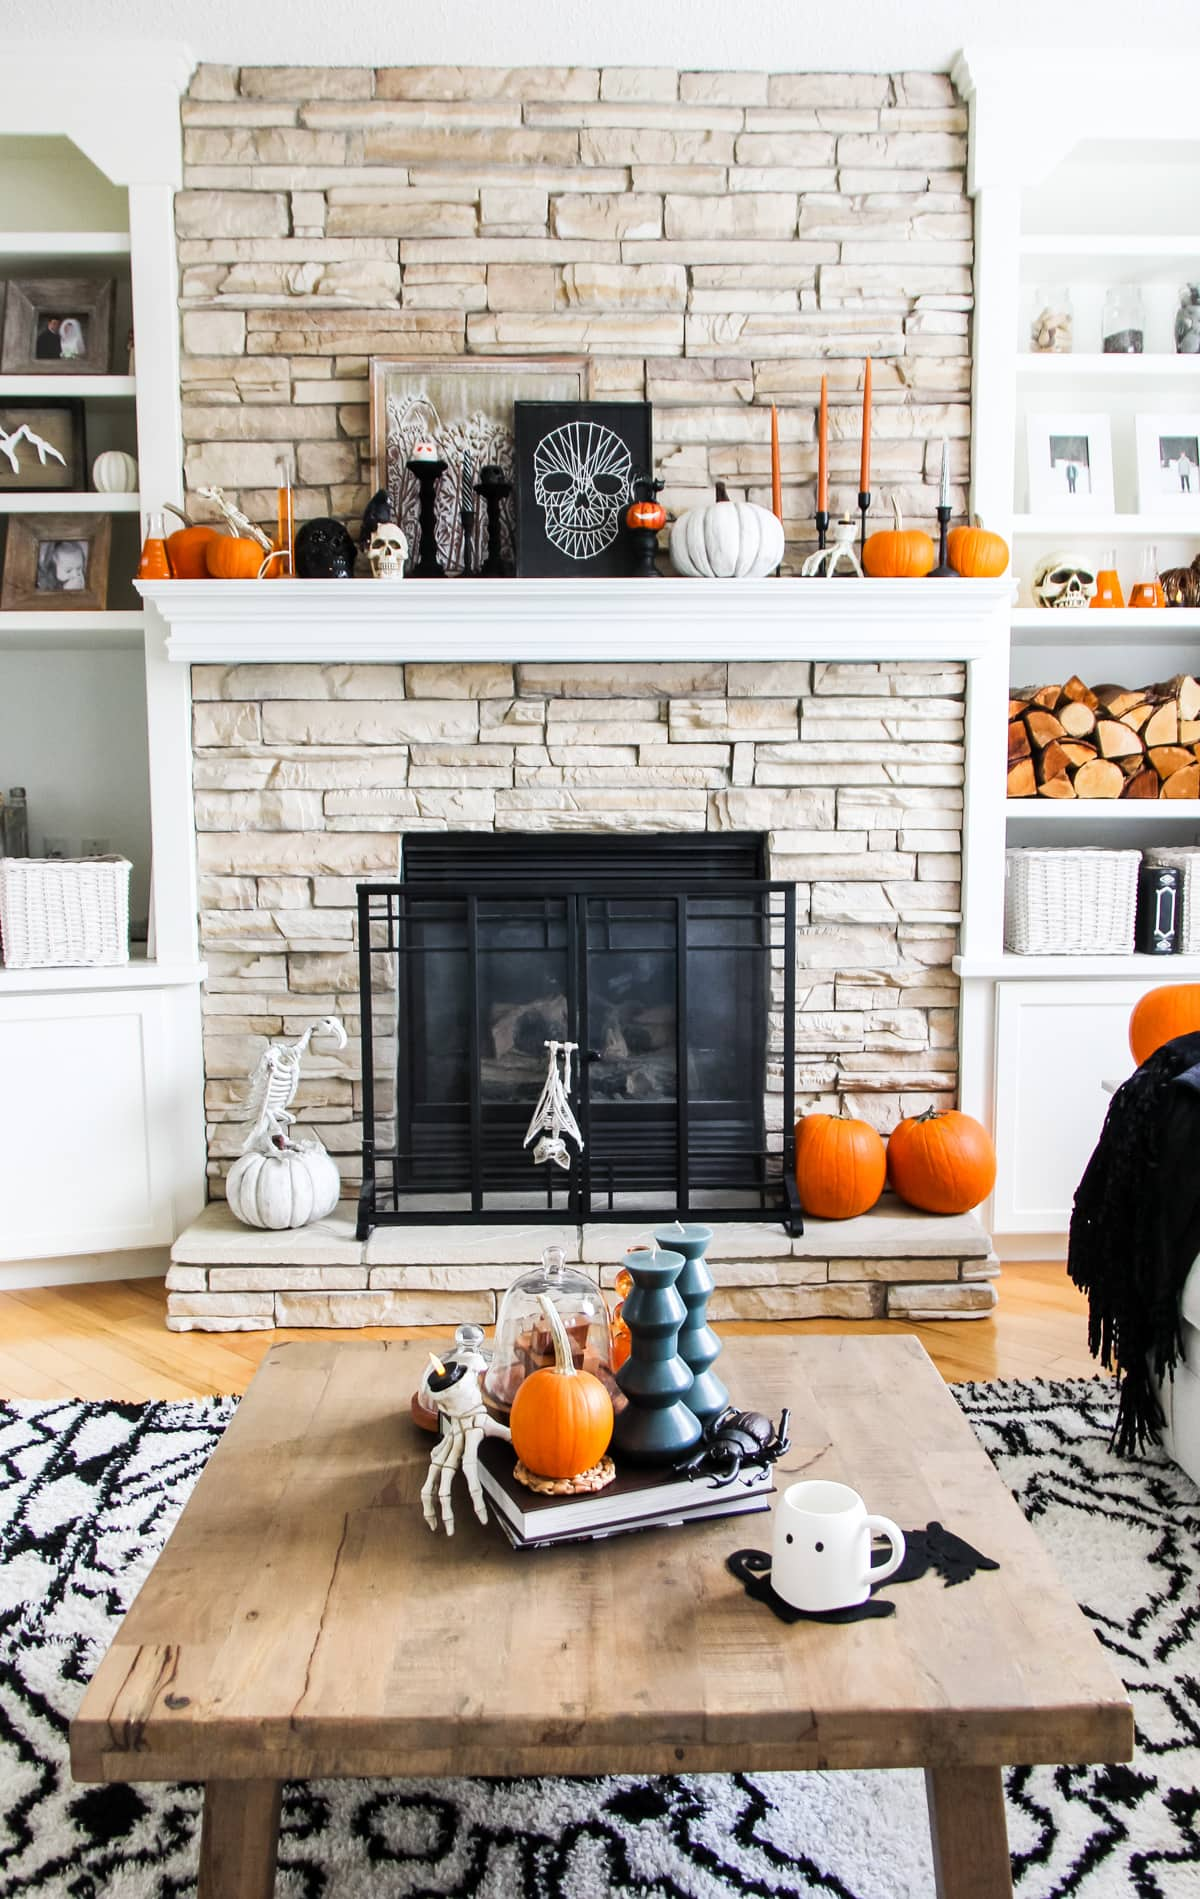 a stone fireplace filled with Halloween decorations including orange candles and orange and white pumpkins, skulls and skeleton hands.